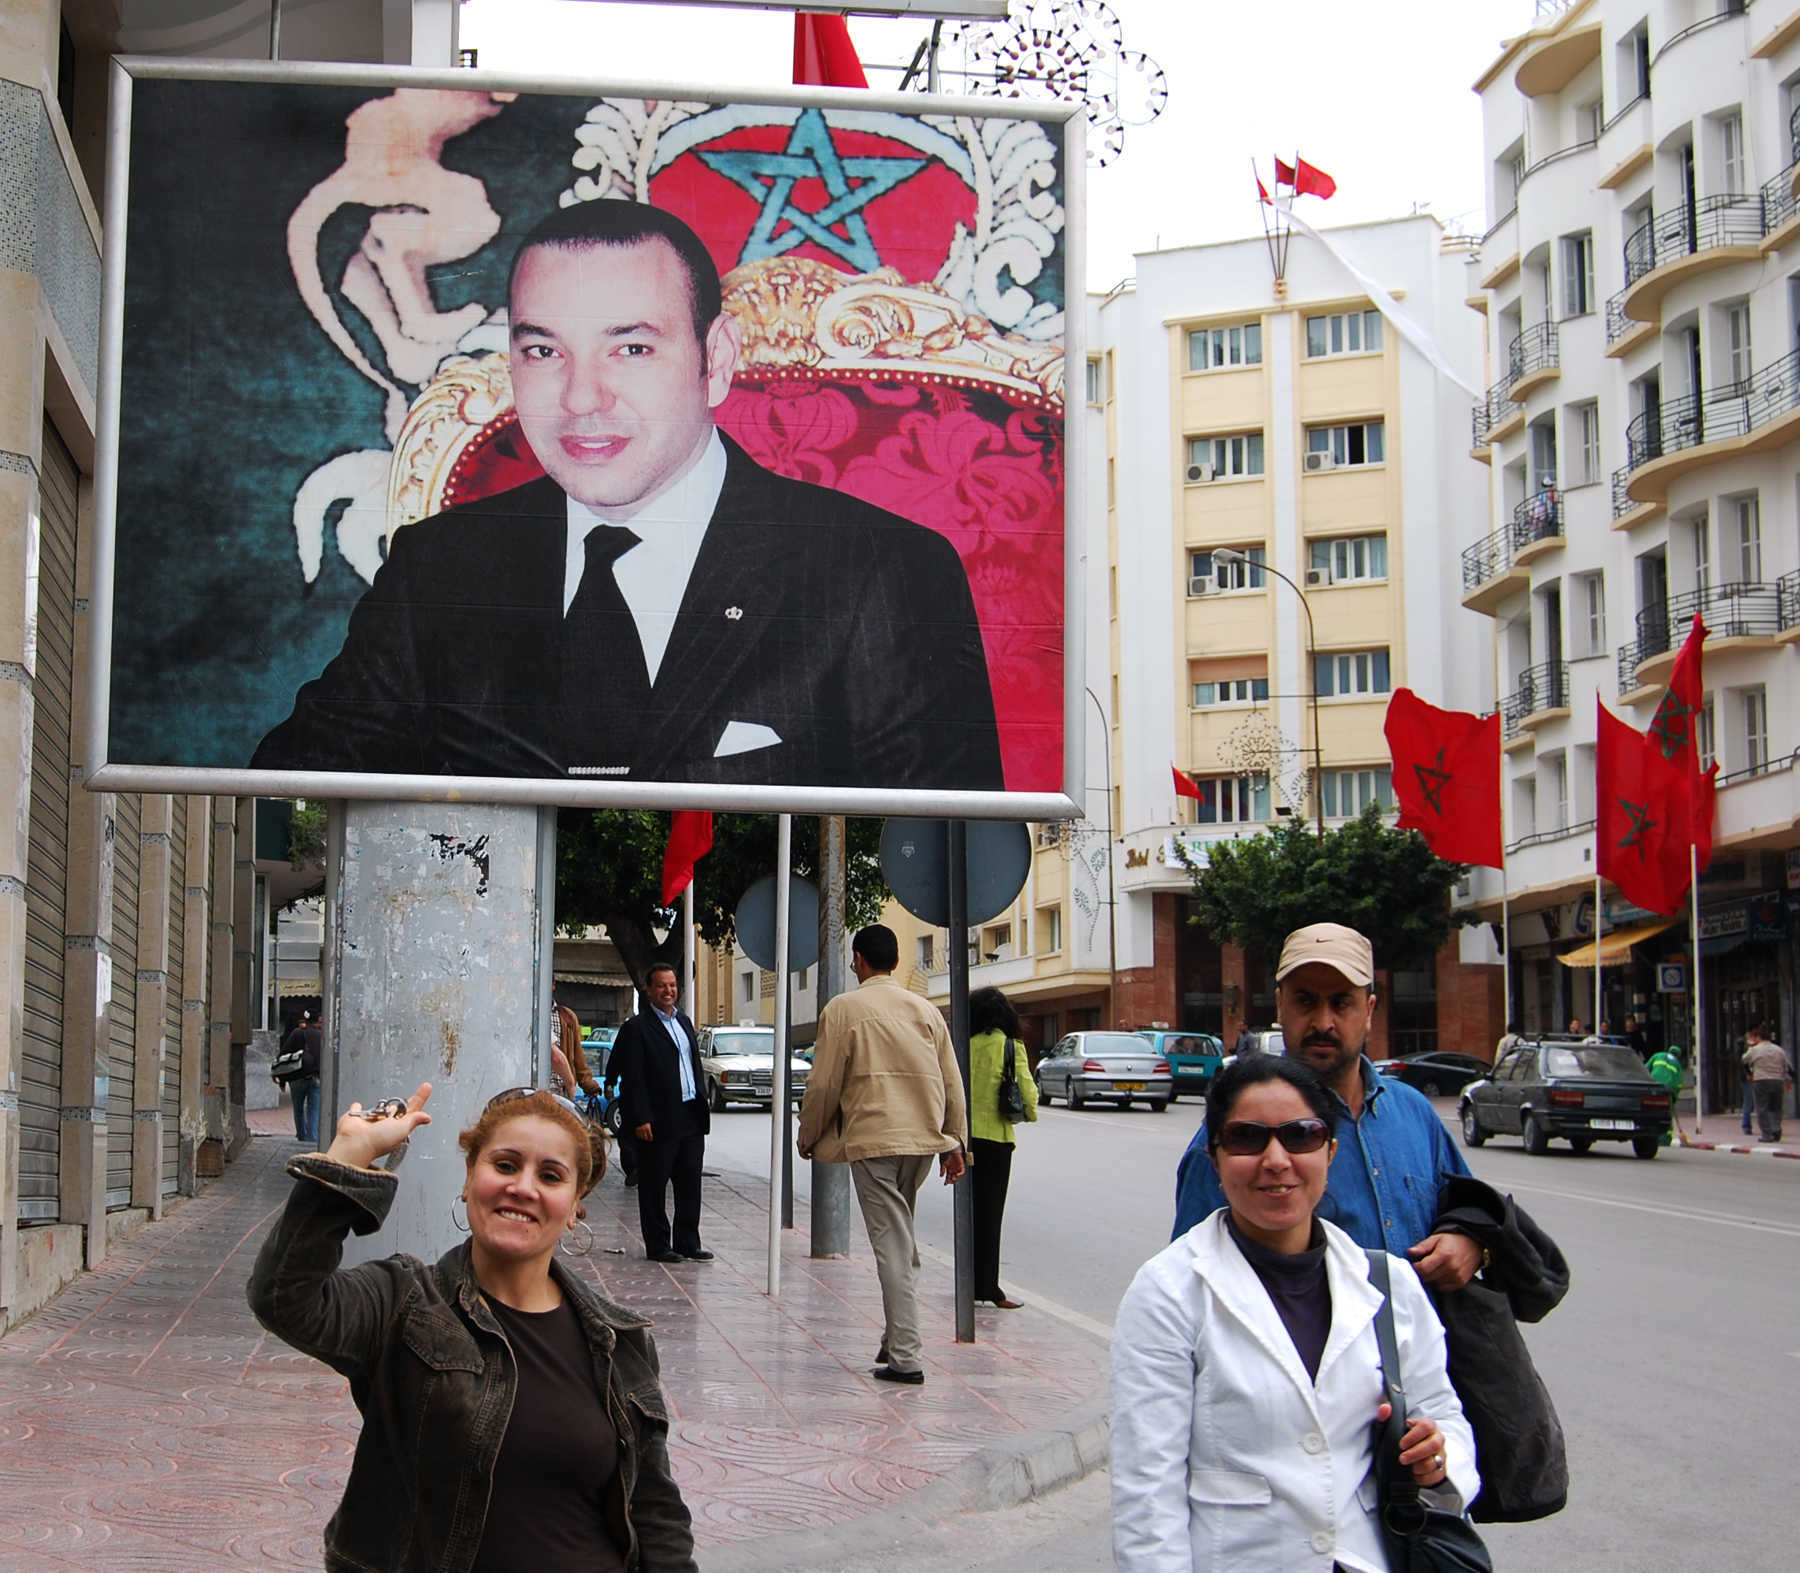 Poster of King, Tangier, Morocco